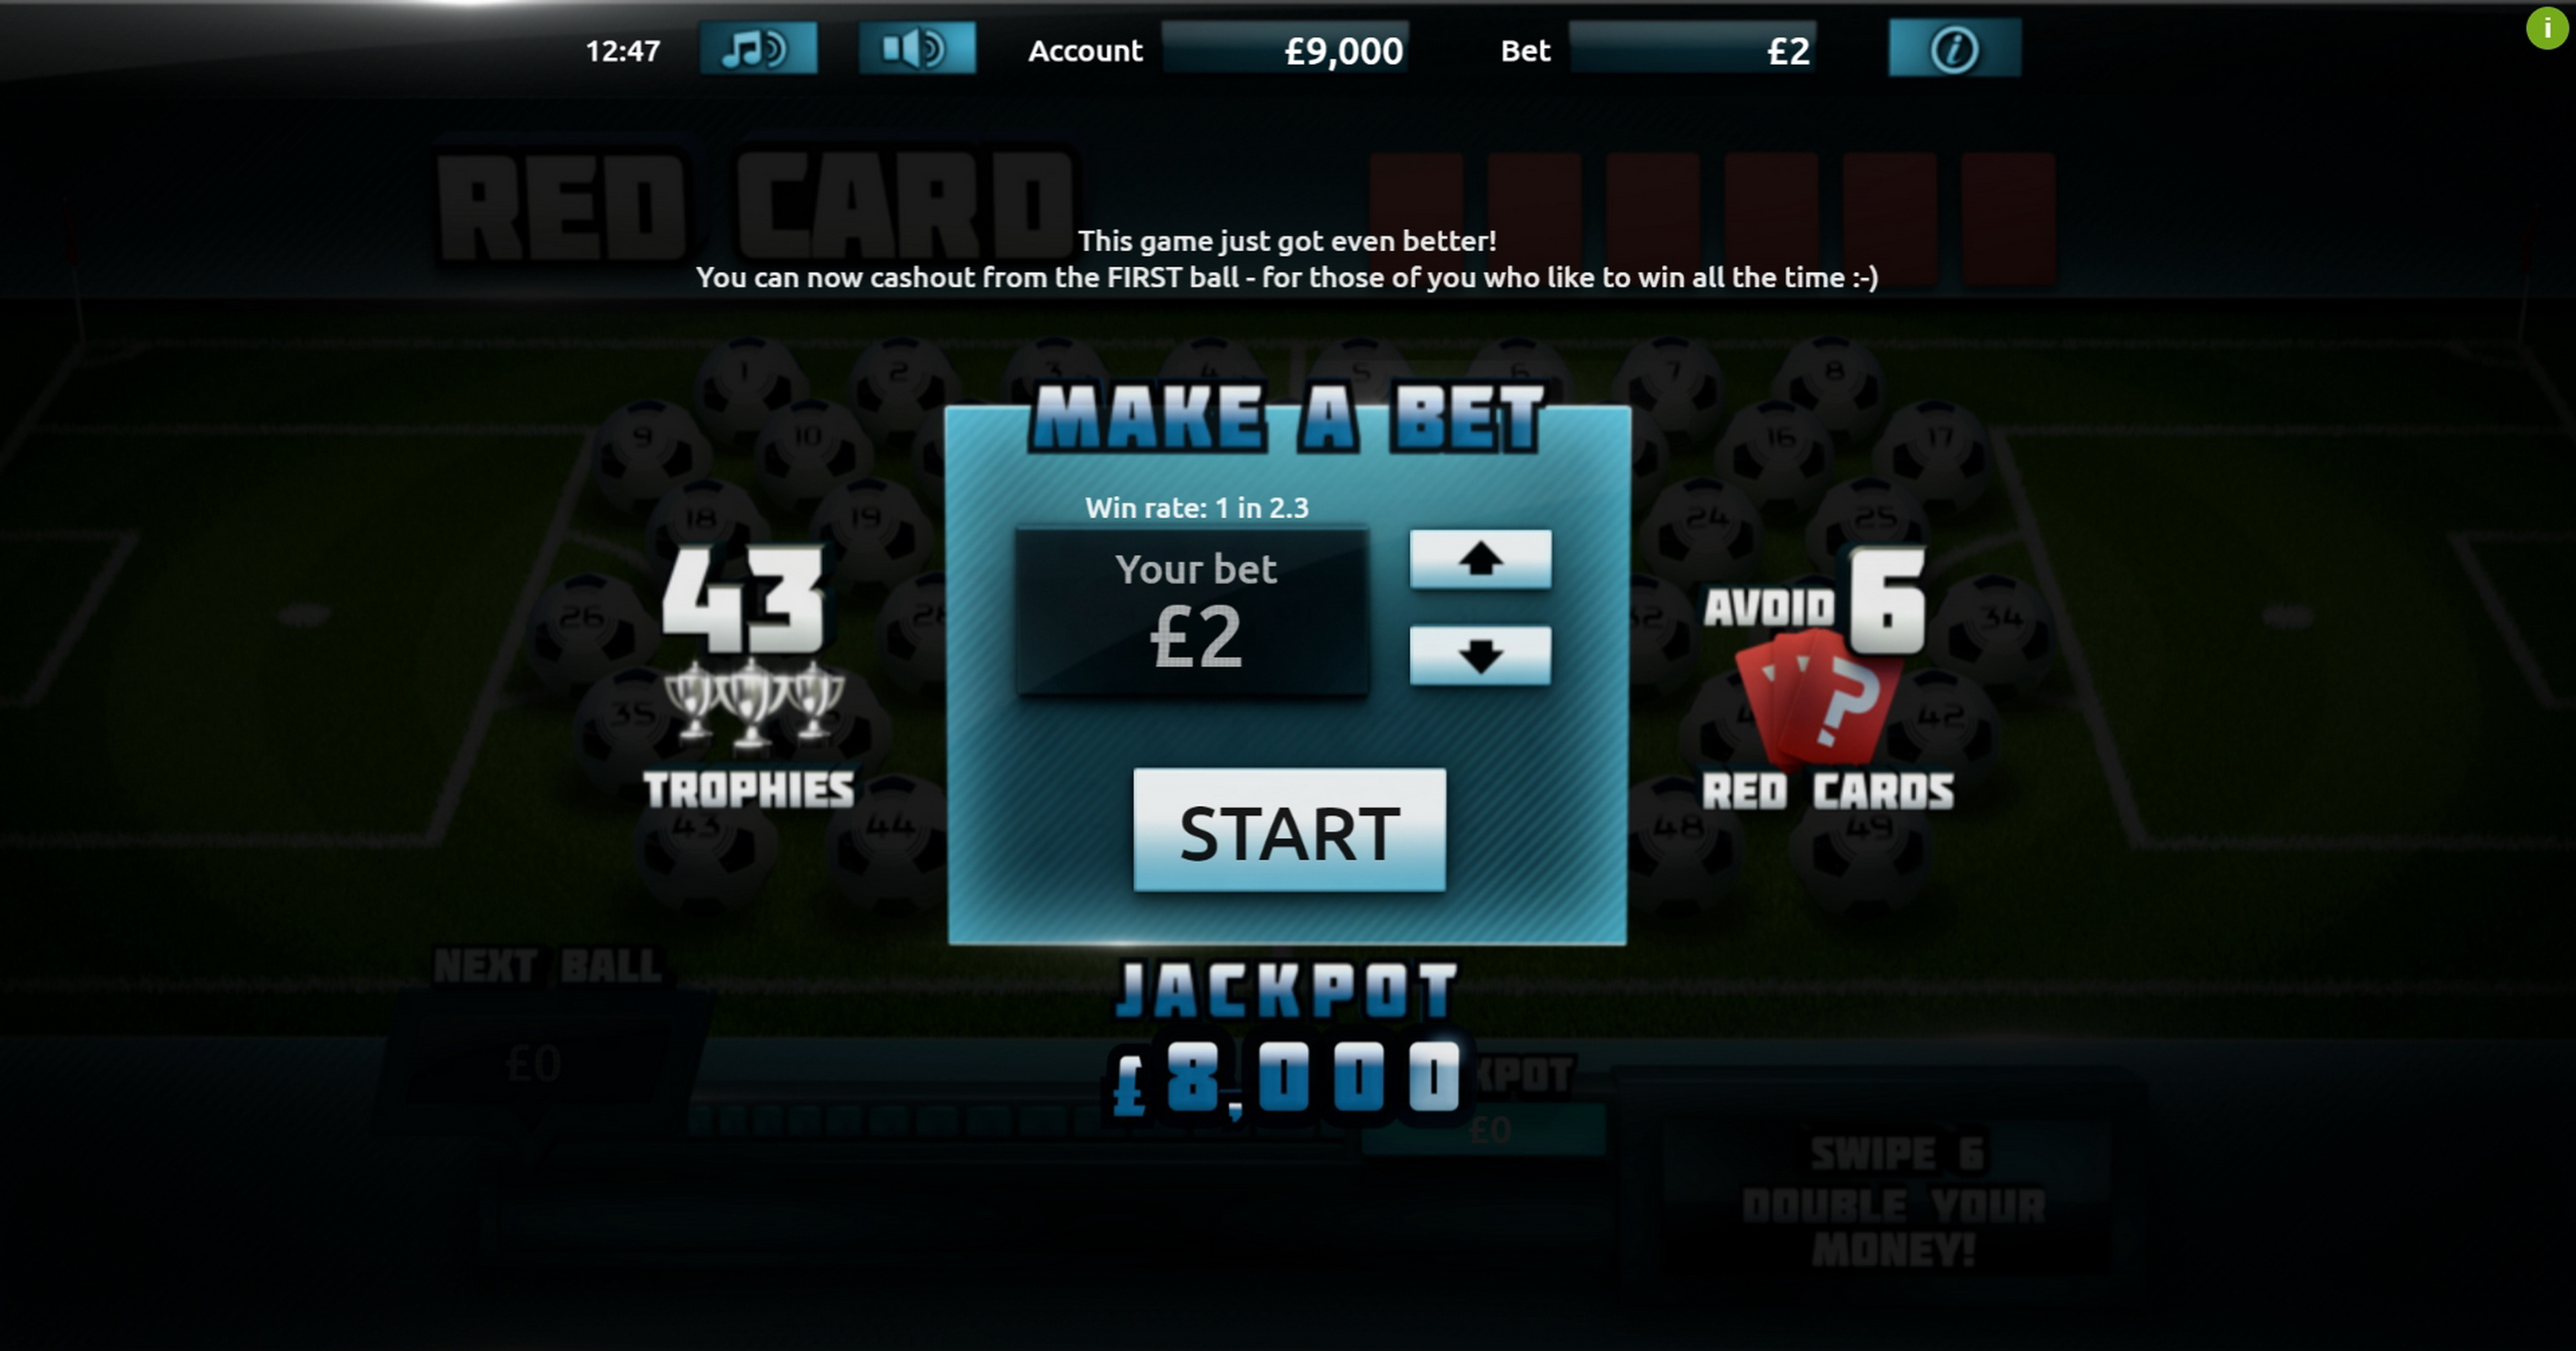 Play Red Card Free Casino Slot Game by Gluck Games